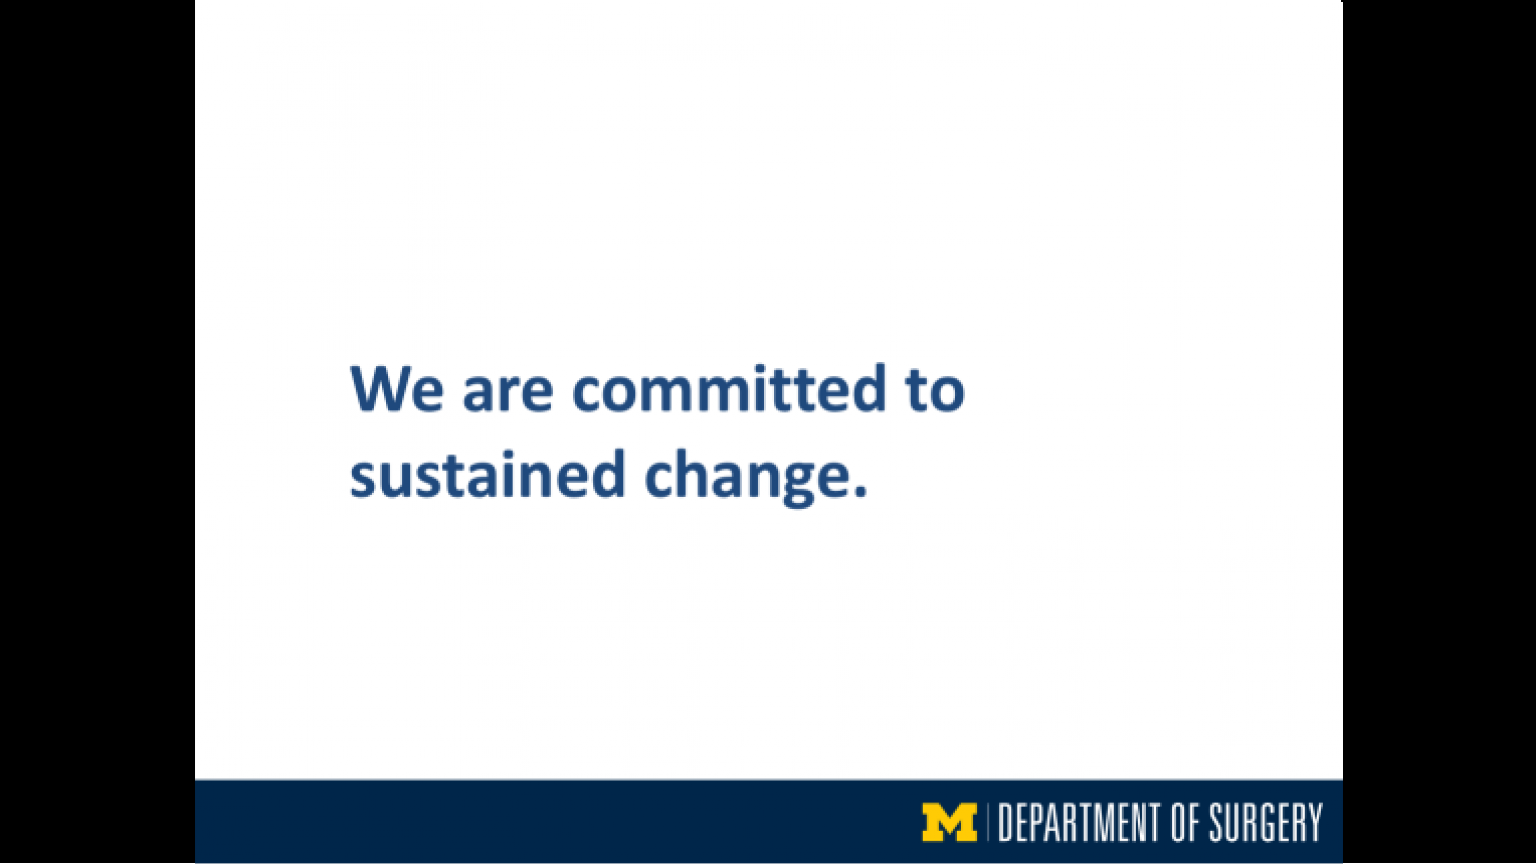 """""""We are committed to sustained change"""" - twenty-second slide of """"This Is What We Stand For"""" presentation"""